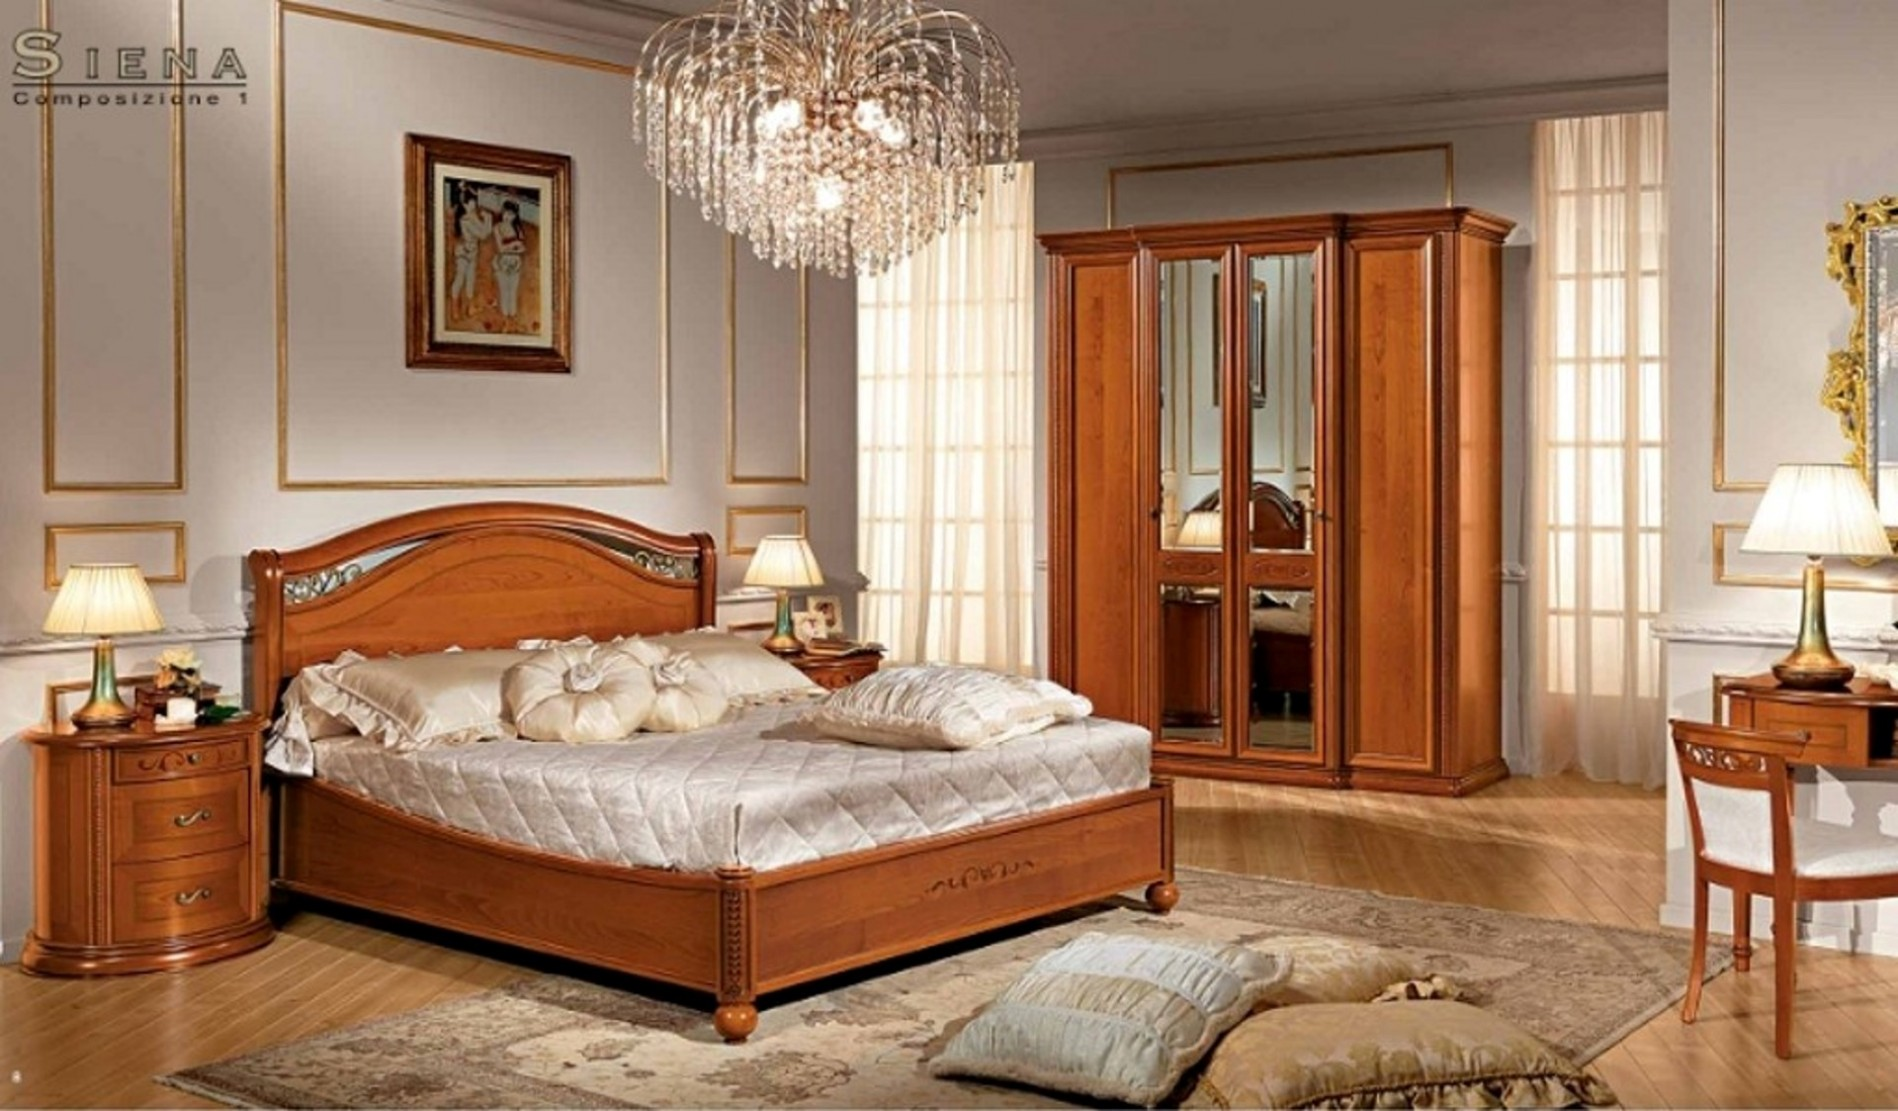 schlafzimmer siena mobili italiani italienische m bel. Black Bedroom Furniture Sets. Home Design Ideas